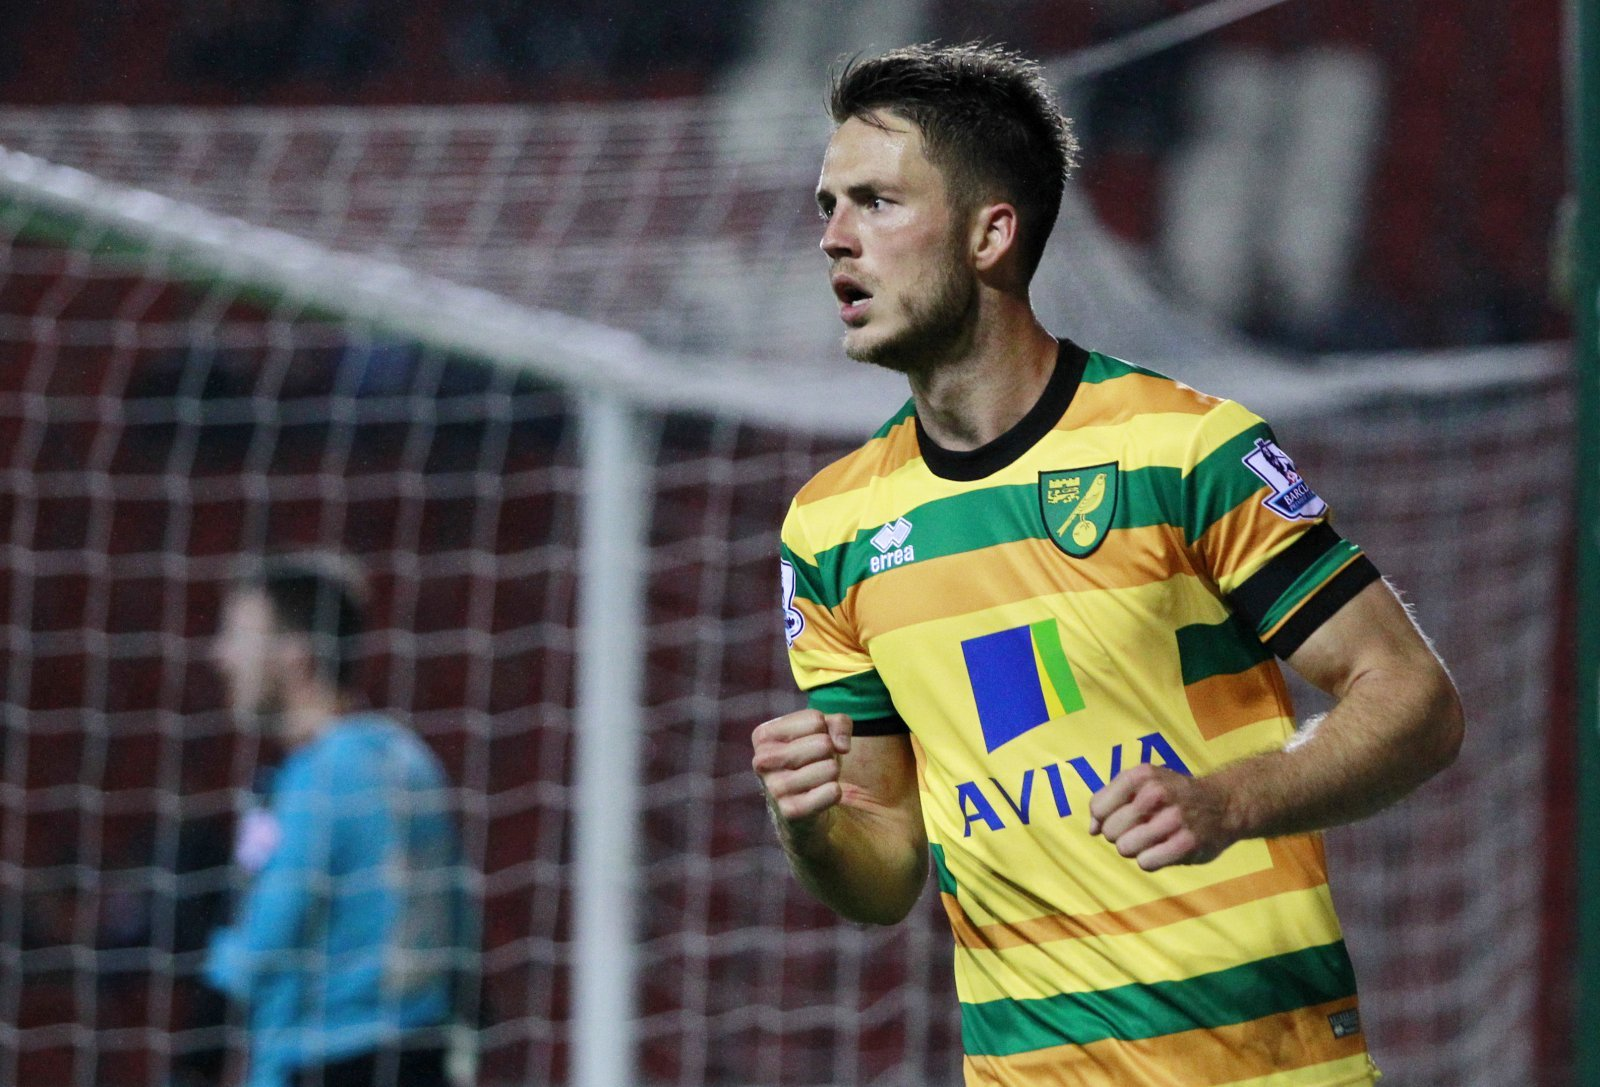 Dodged Bullet: Chelsea and Ricky van Wolfswinkel